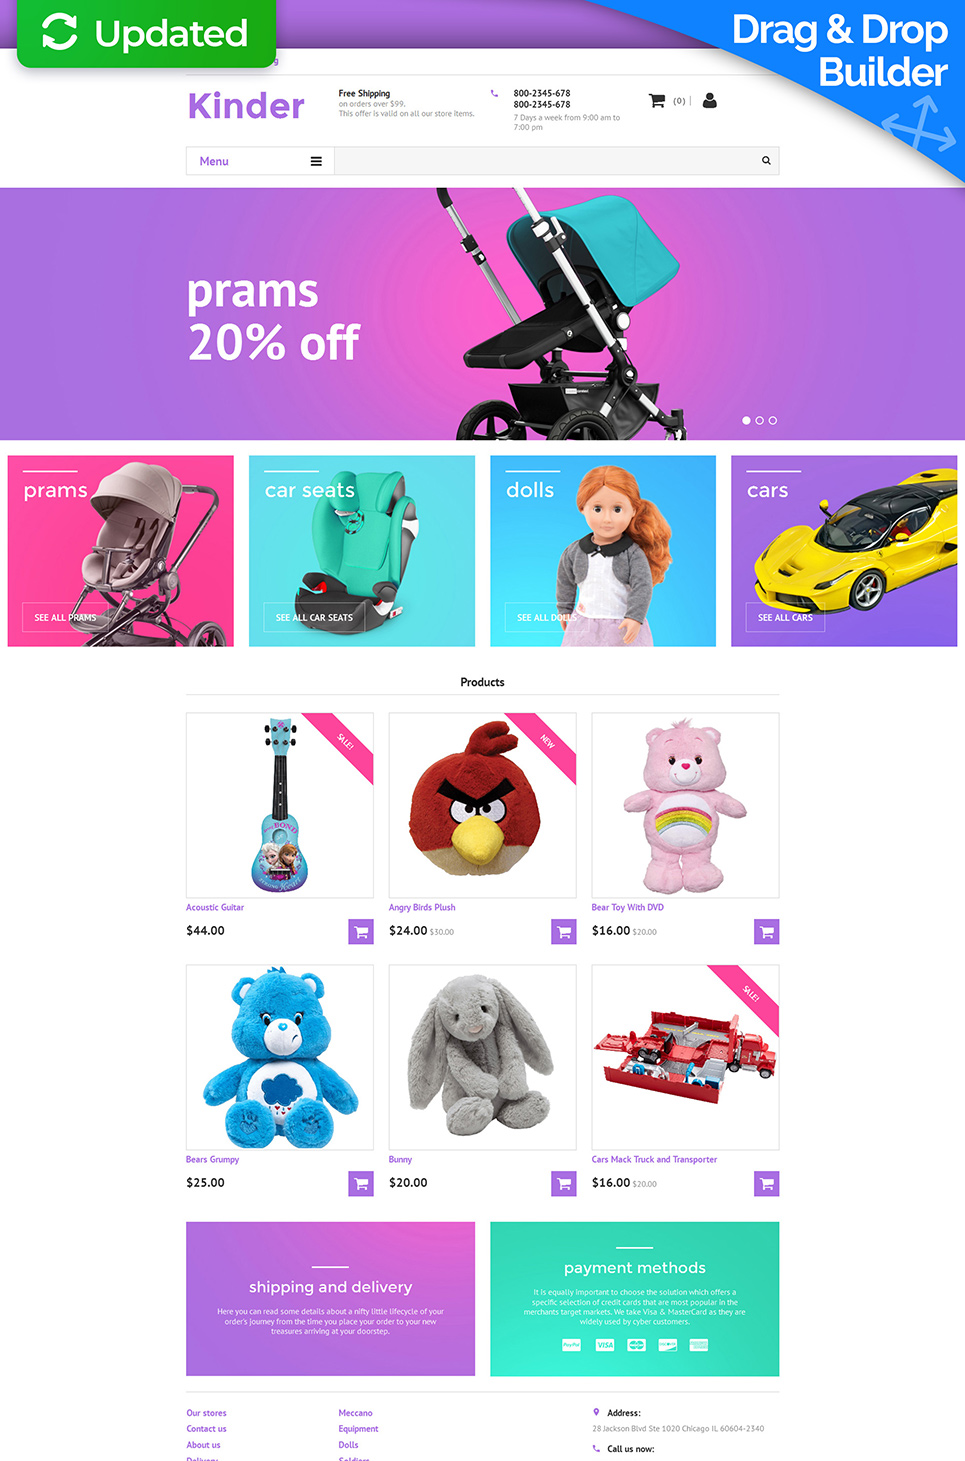 Family Responsive Ecommerce Template #58997 - image